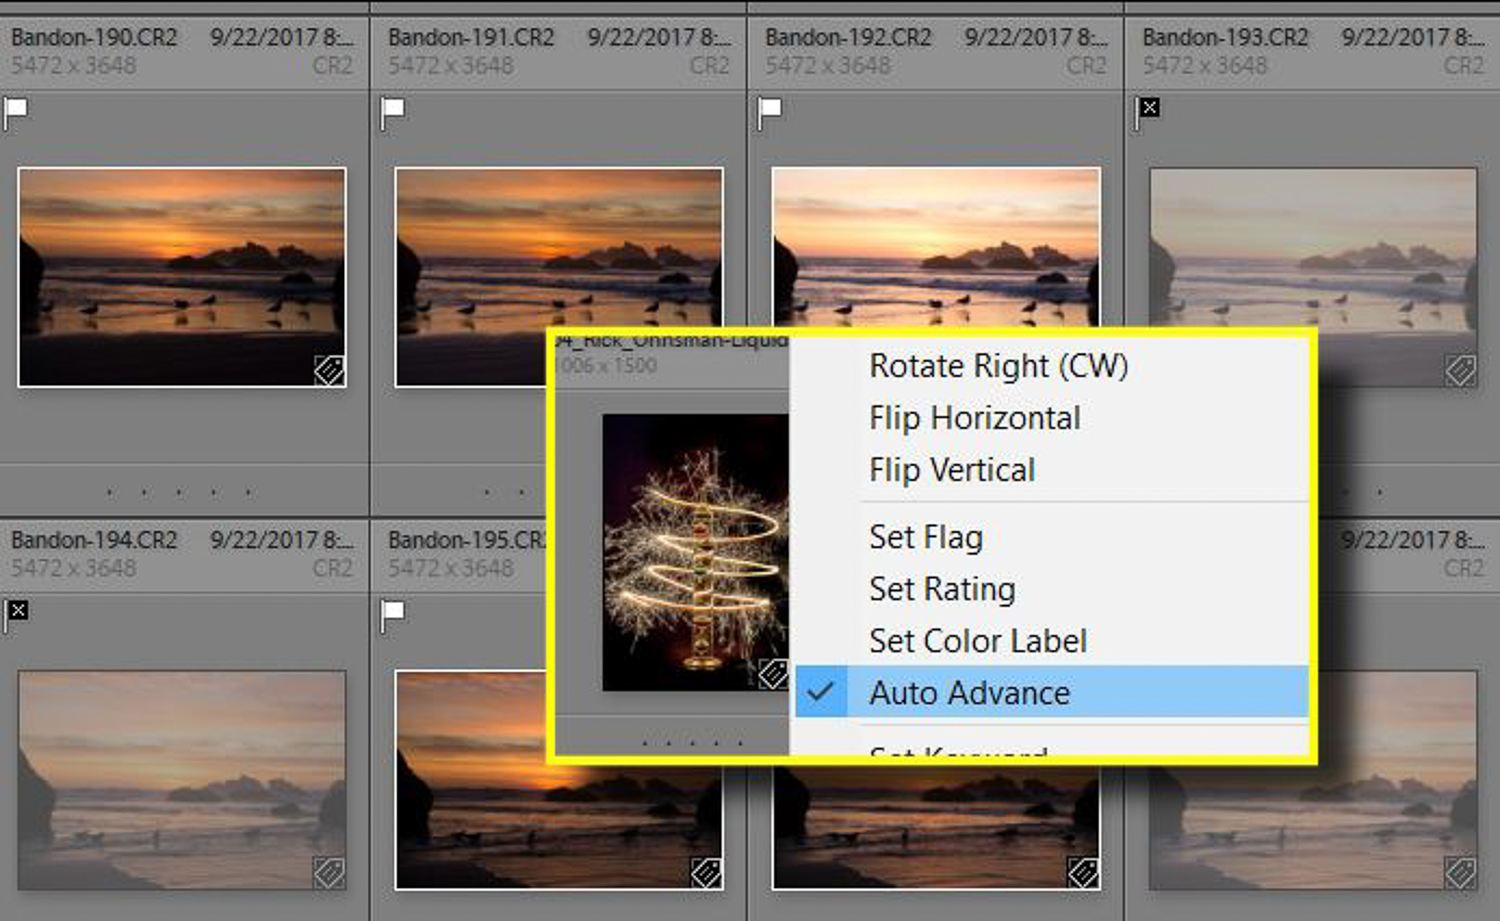 Flagging images as Picks or Rejects in Lightroom and using Auto Advance to move through them.